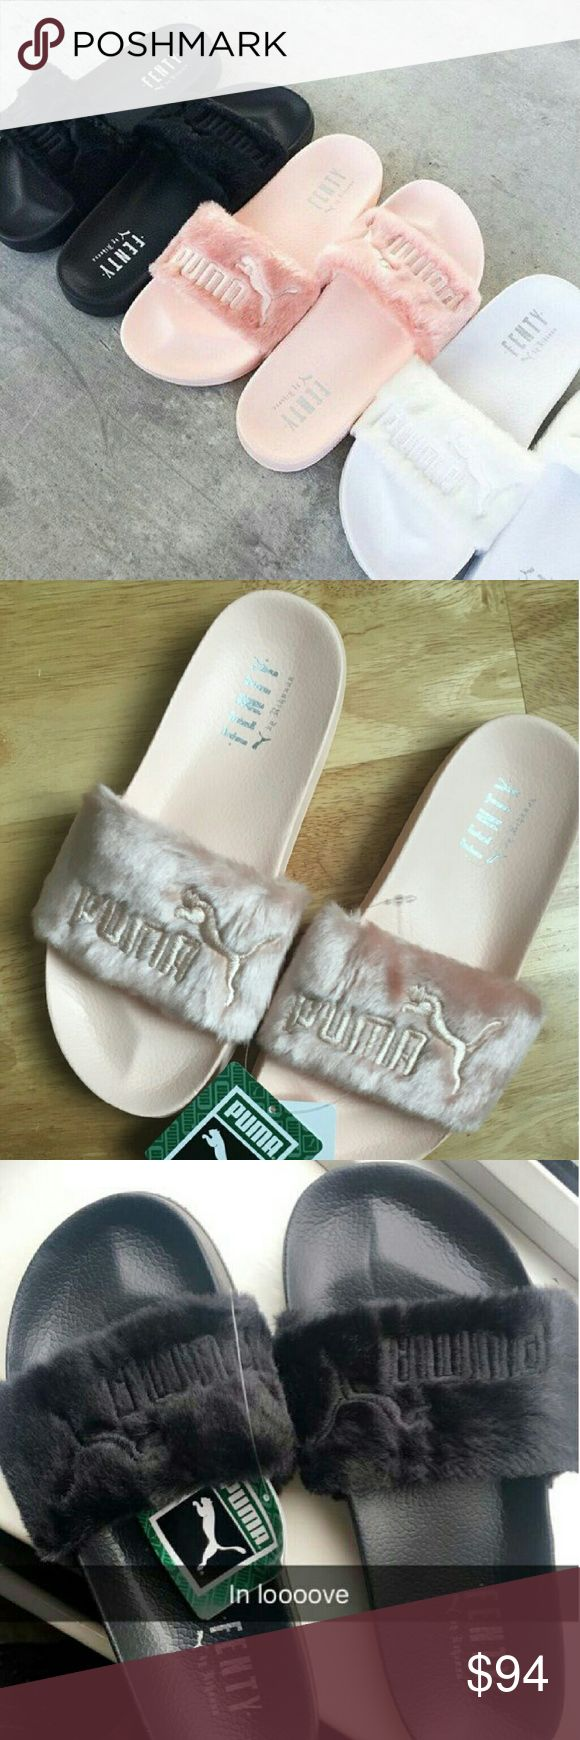 Rihanna Puma FENTY Slippers ✔✔MAKE AN OFFER✔✔ I HAVE A MAGIC NUMBER!!! IF YOU MAKE AN OFFER AND IT GETS DECLINE YOU WERE TOO LOW   Available in pink, black, and white Comes with dust bag  Popular shoes currently right now Please allow 7 to 10 days  Please indicate which color pink, black, or white $70.00 on website   Www.msteeboutique.com Puma Shoes Slippers